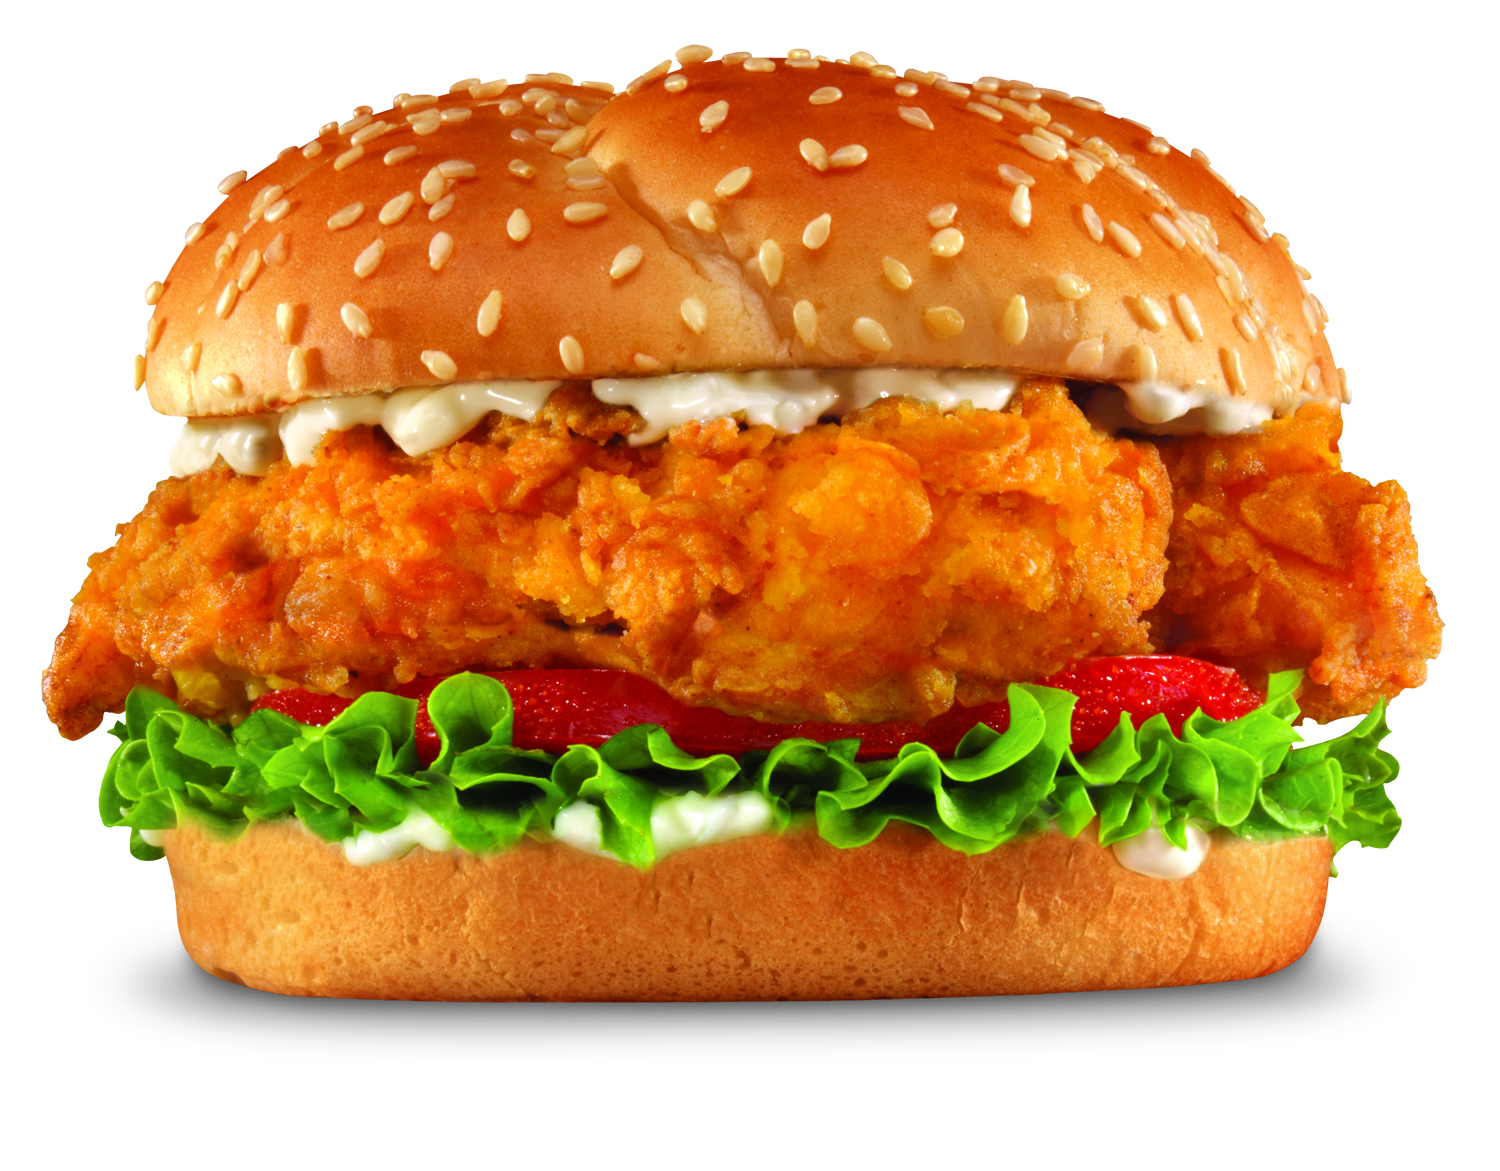 images of chicken burgers - photo #4